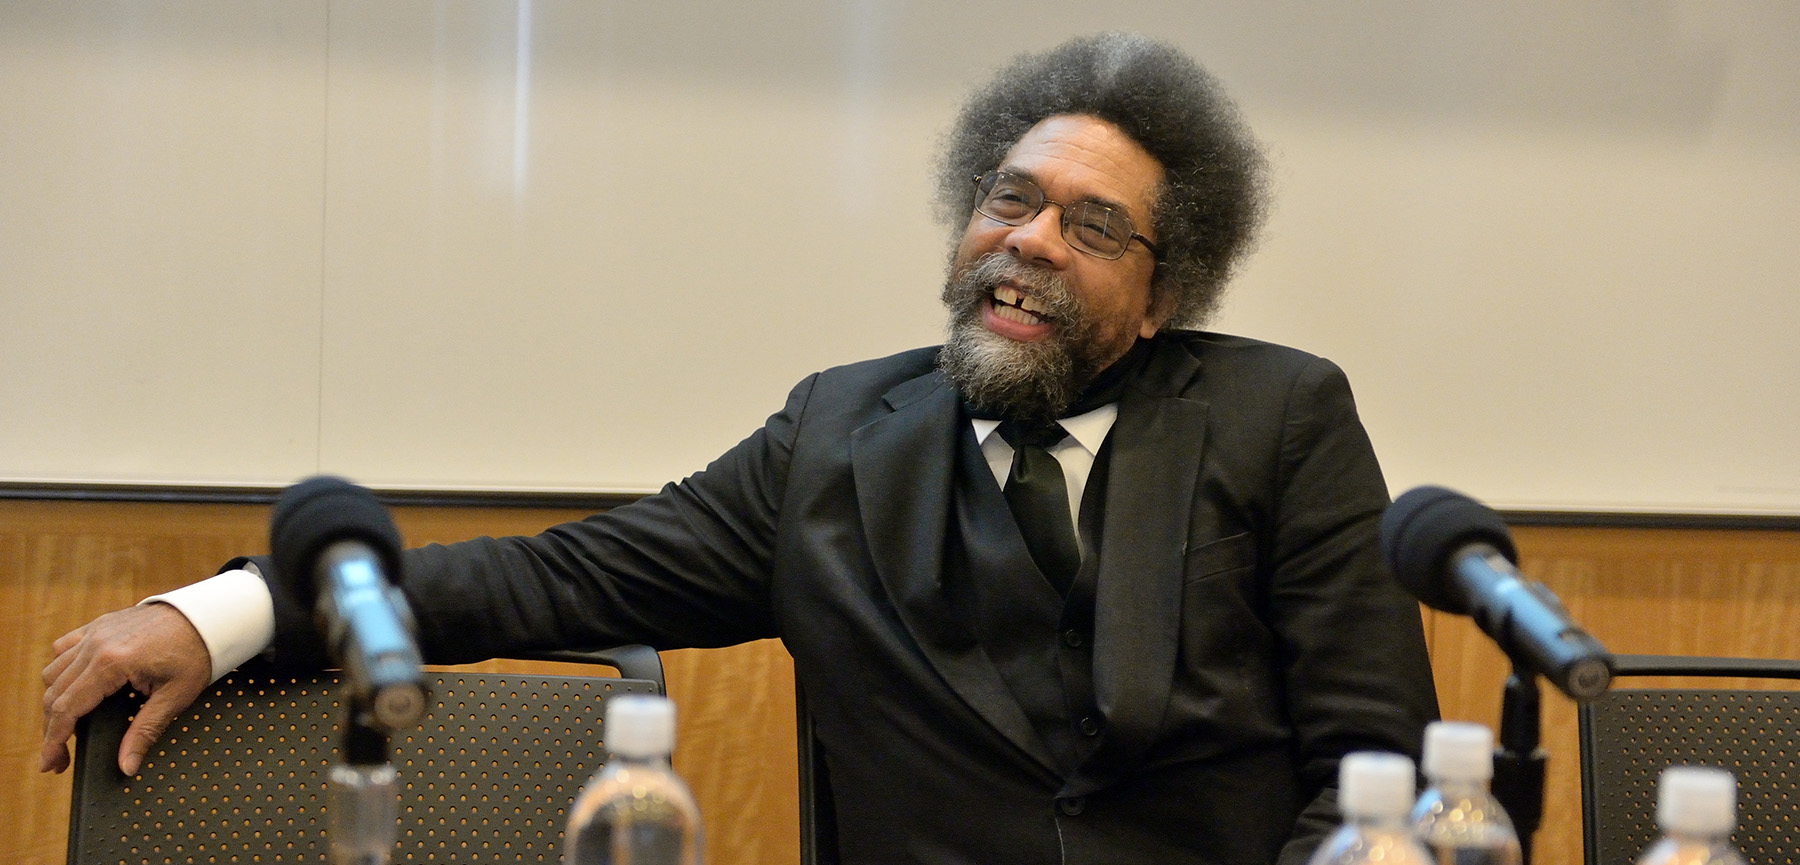 cornel west education At tuesday's event, cornel west spoke with conviction and compassion, demonstrating care for his audience even as the event reached its scheduled end, he remained committed to speaking to every audience member who had a question for him i just want to revel in your humanity no matter what.